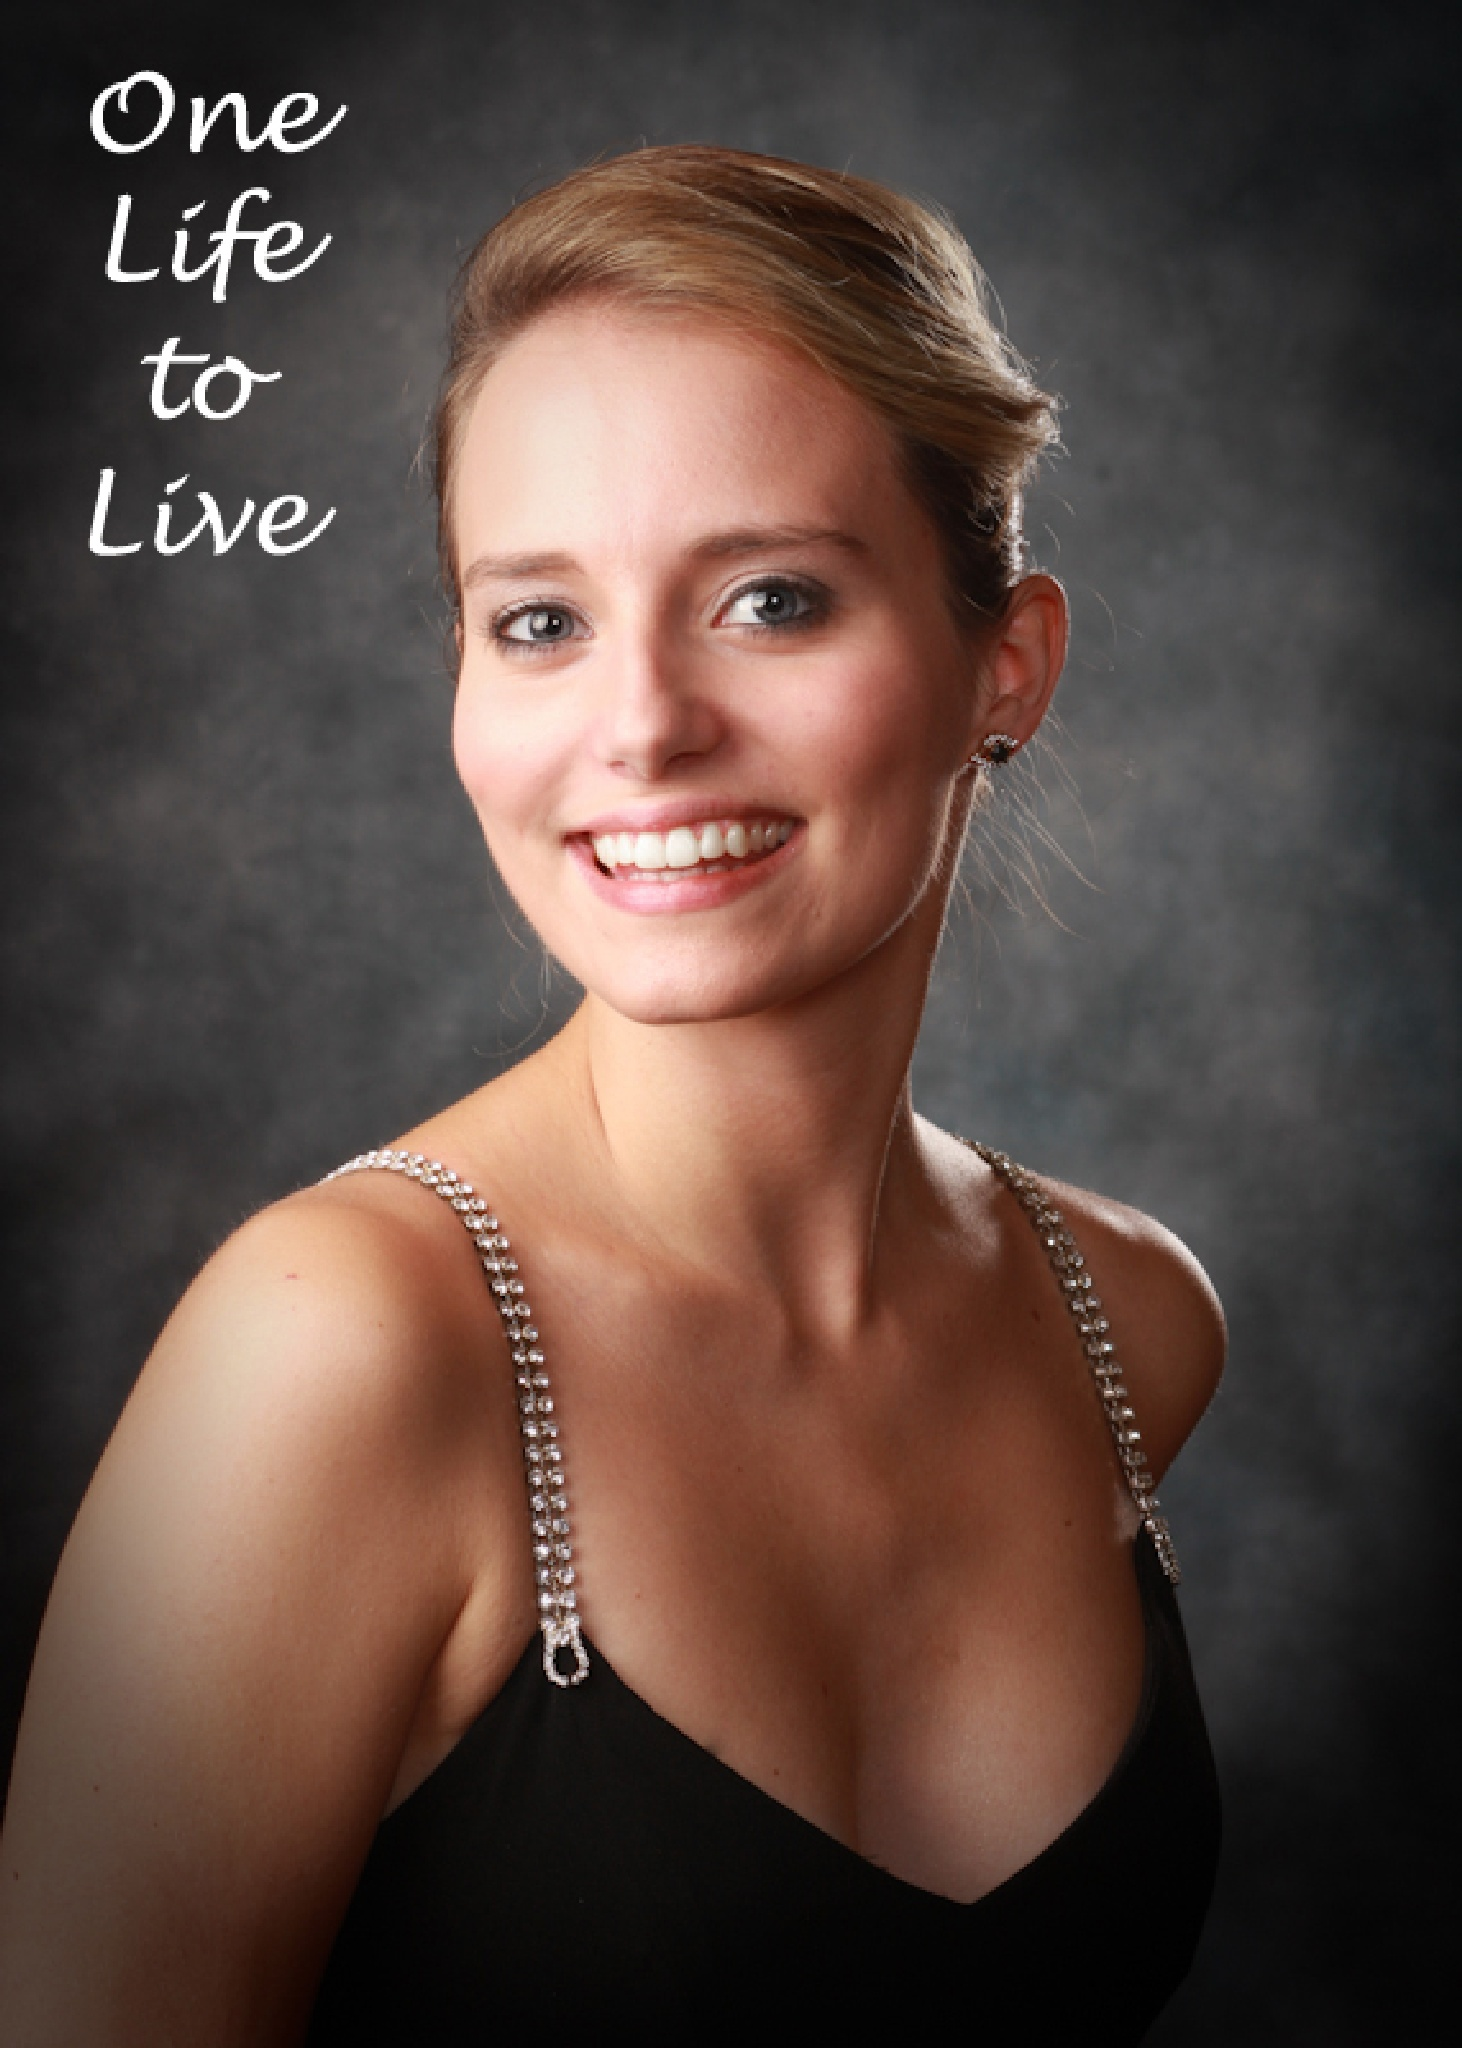 One life to live by flintfotos